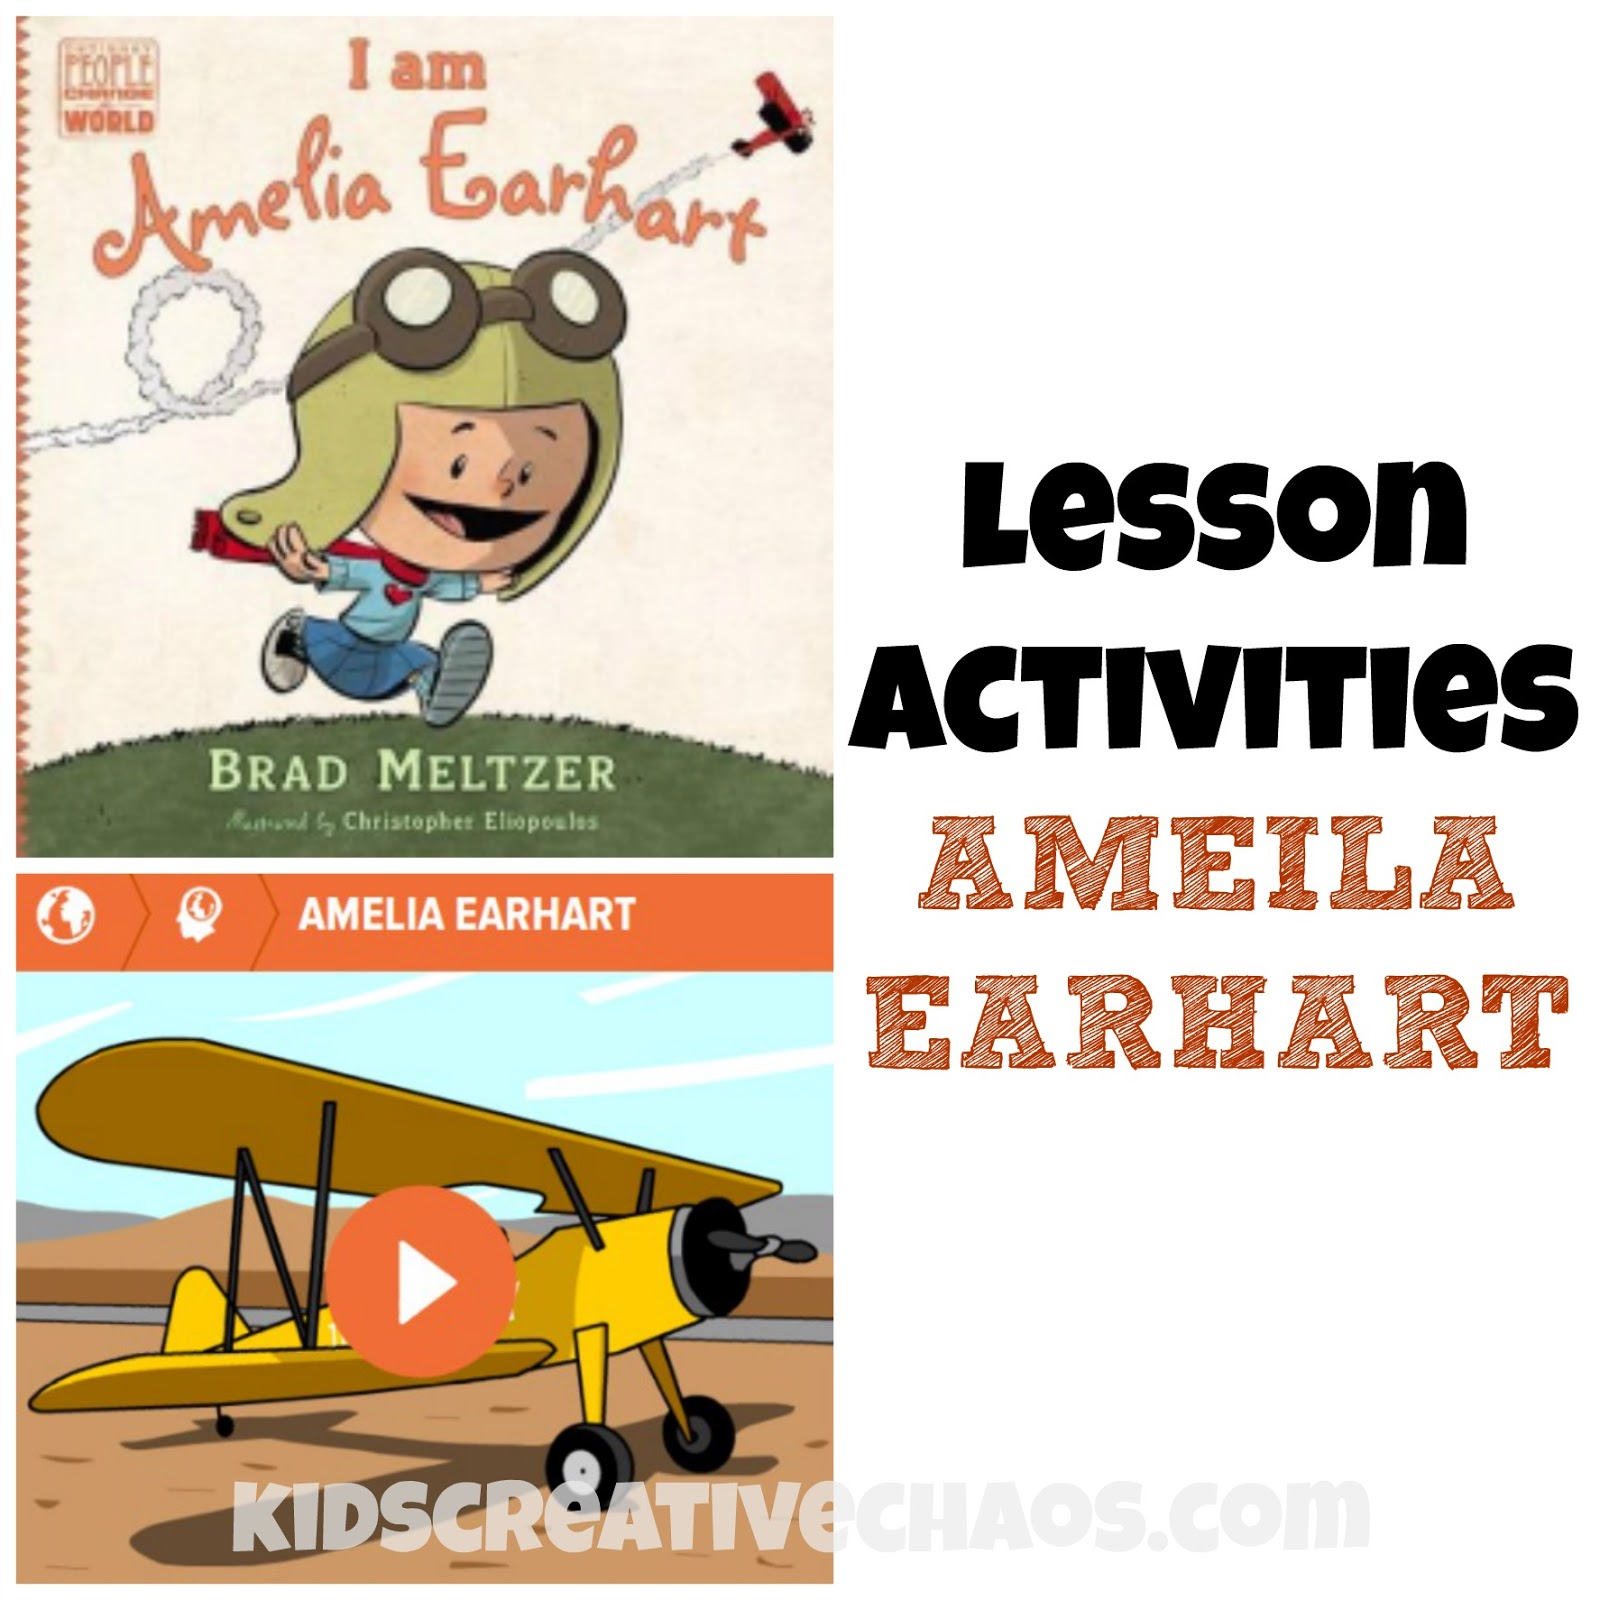 Amelia Earhart Lesson Activities Book Review